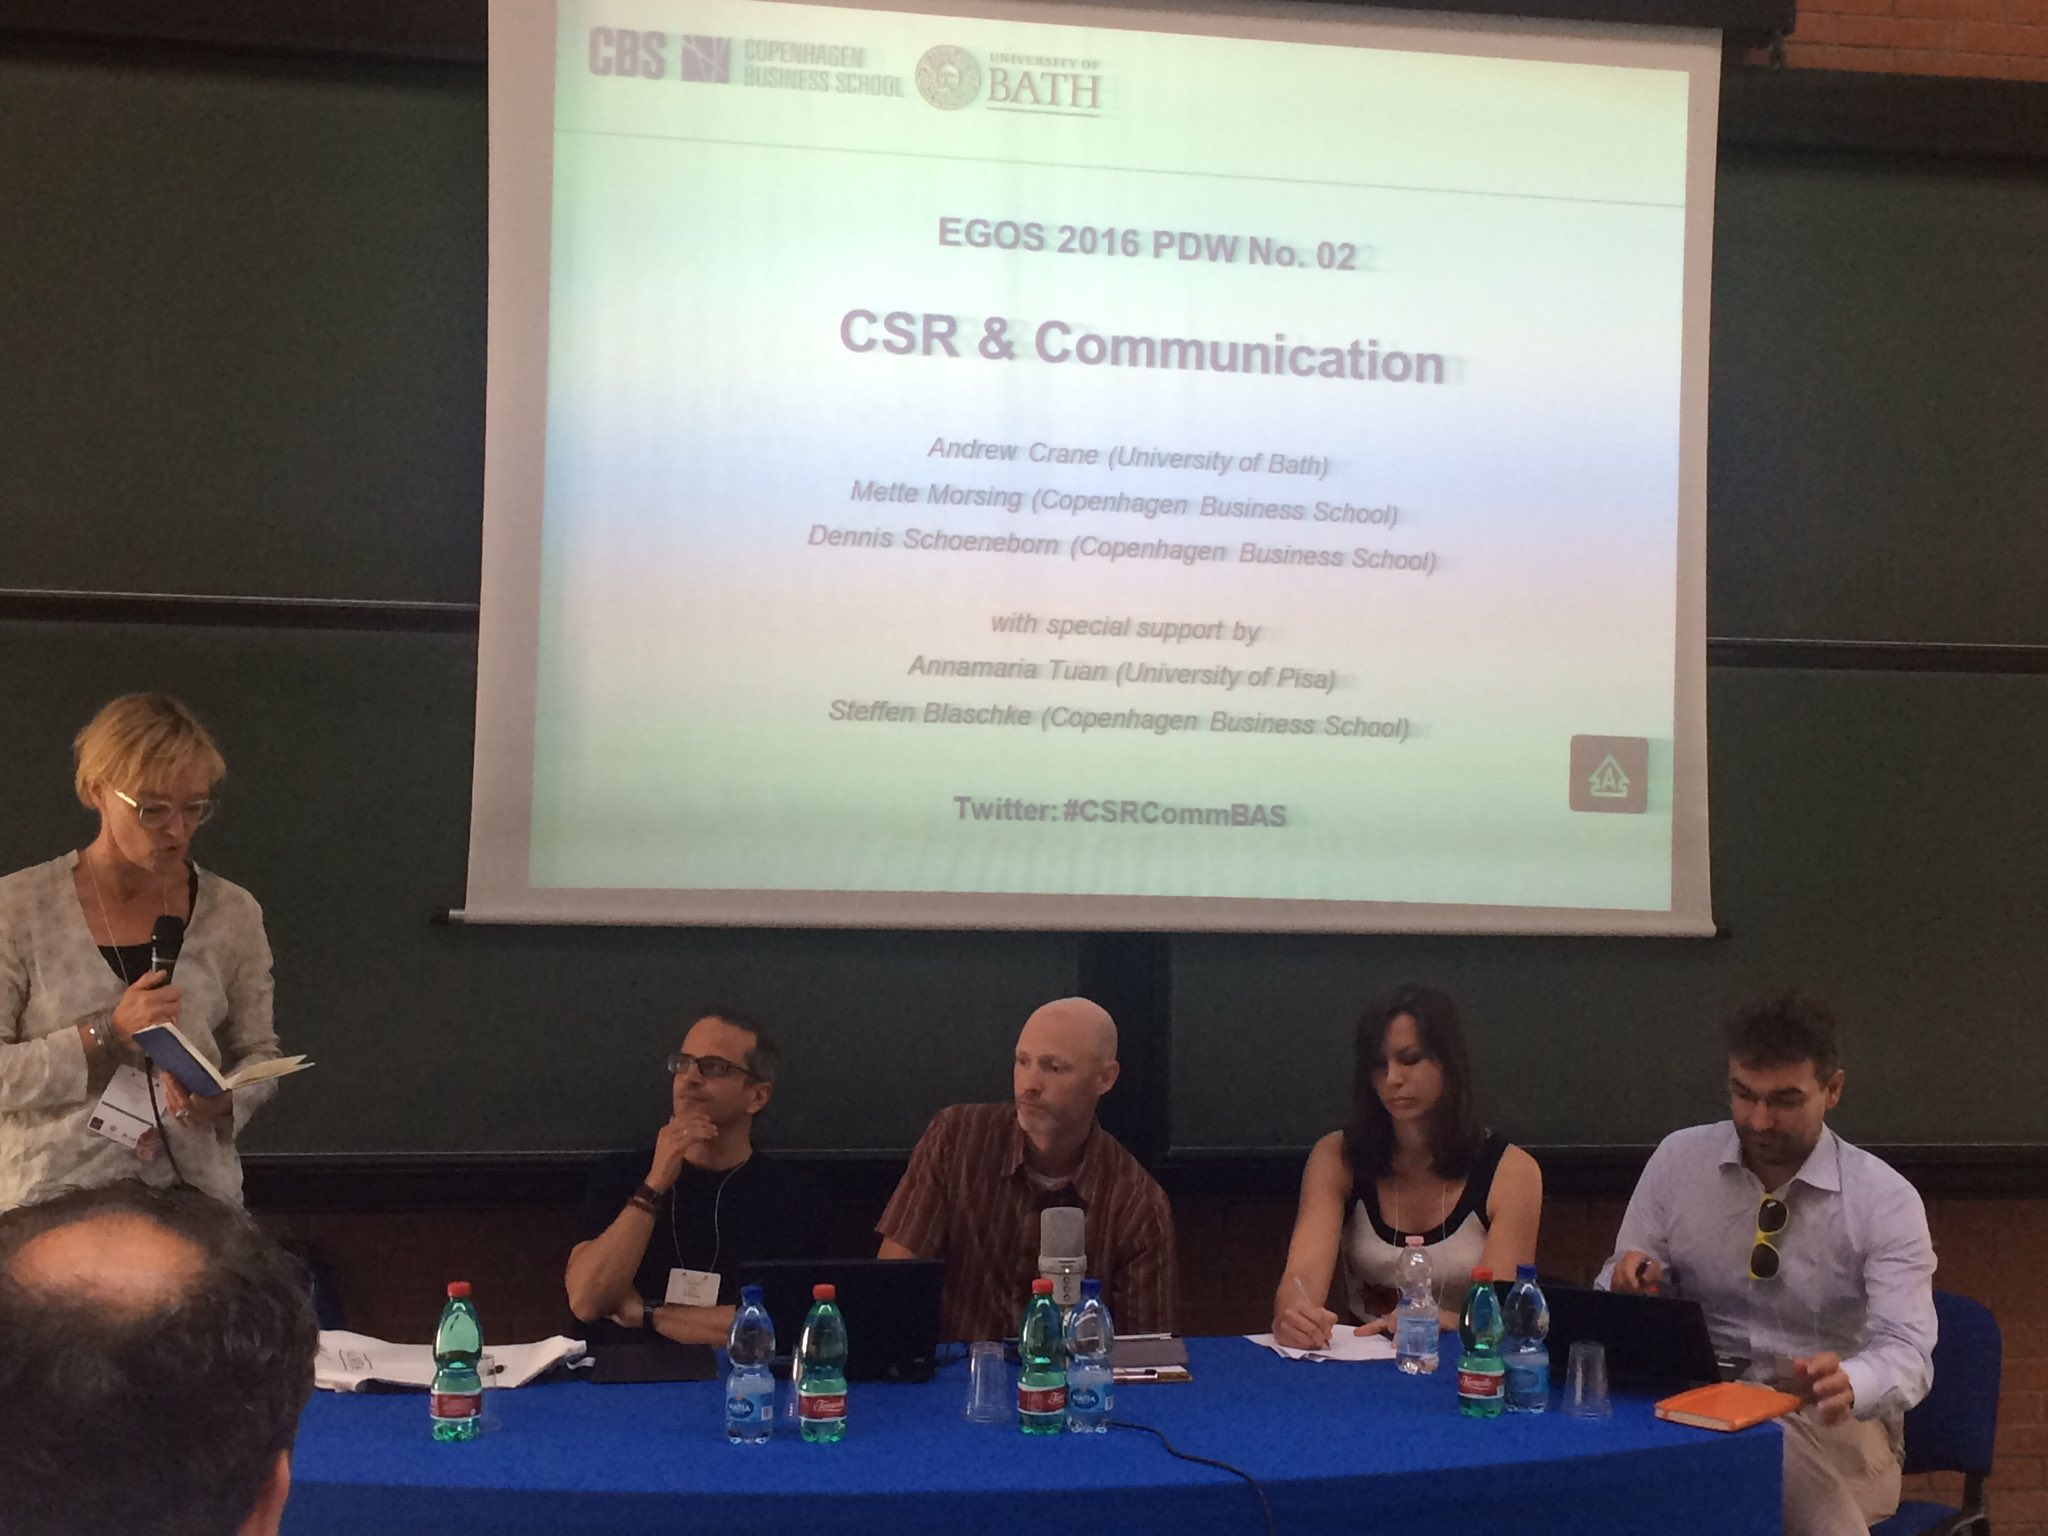 Panel session with great CSR scholars: J Costas, JP Gond, T Kuhn, Guido Palazzo, Mette Morsing #CSRCommBAS https://t.co/zdAXUUEti6